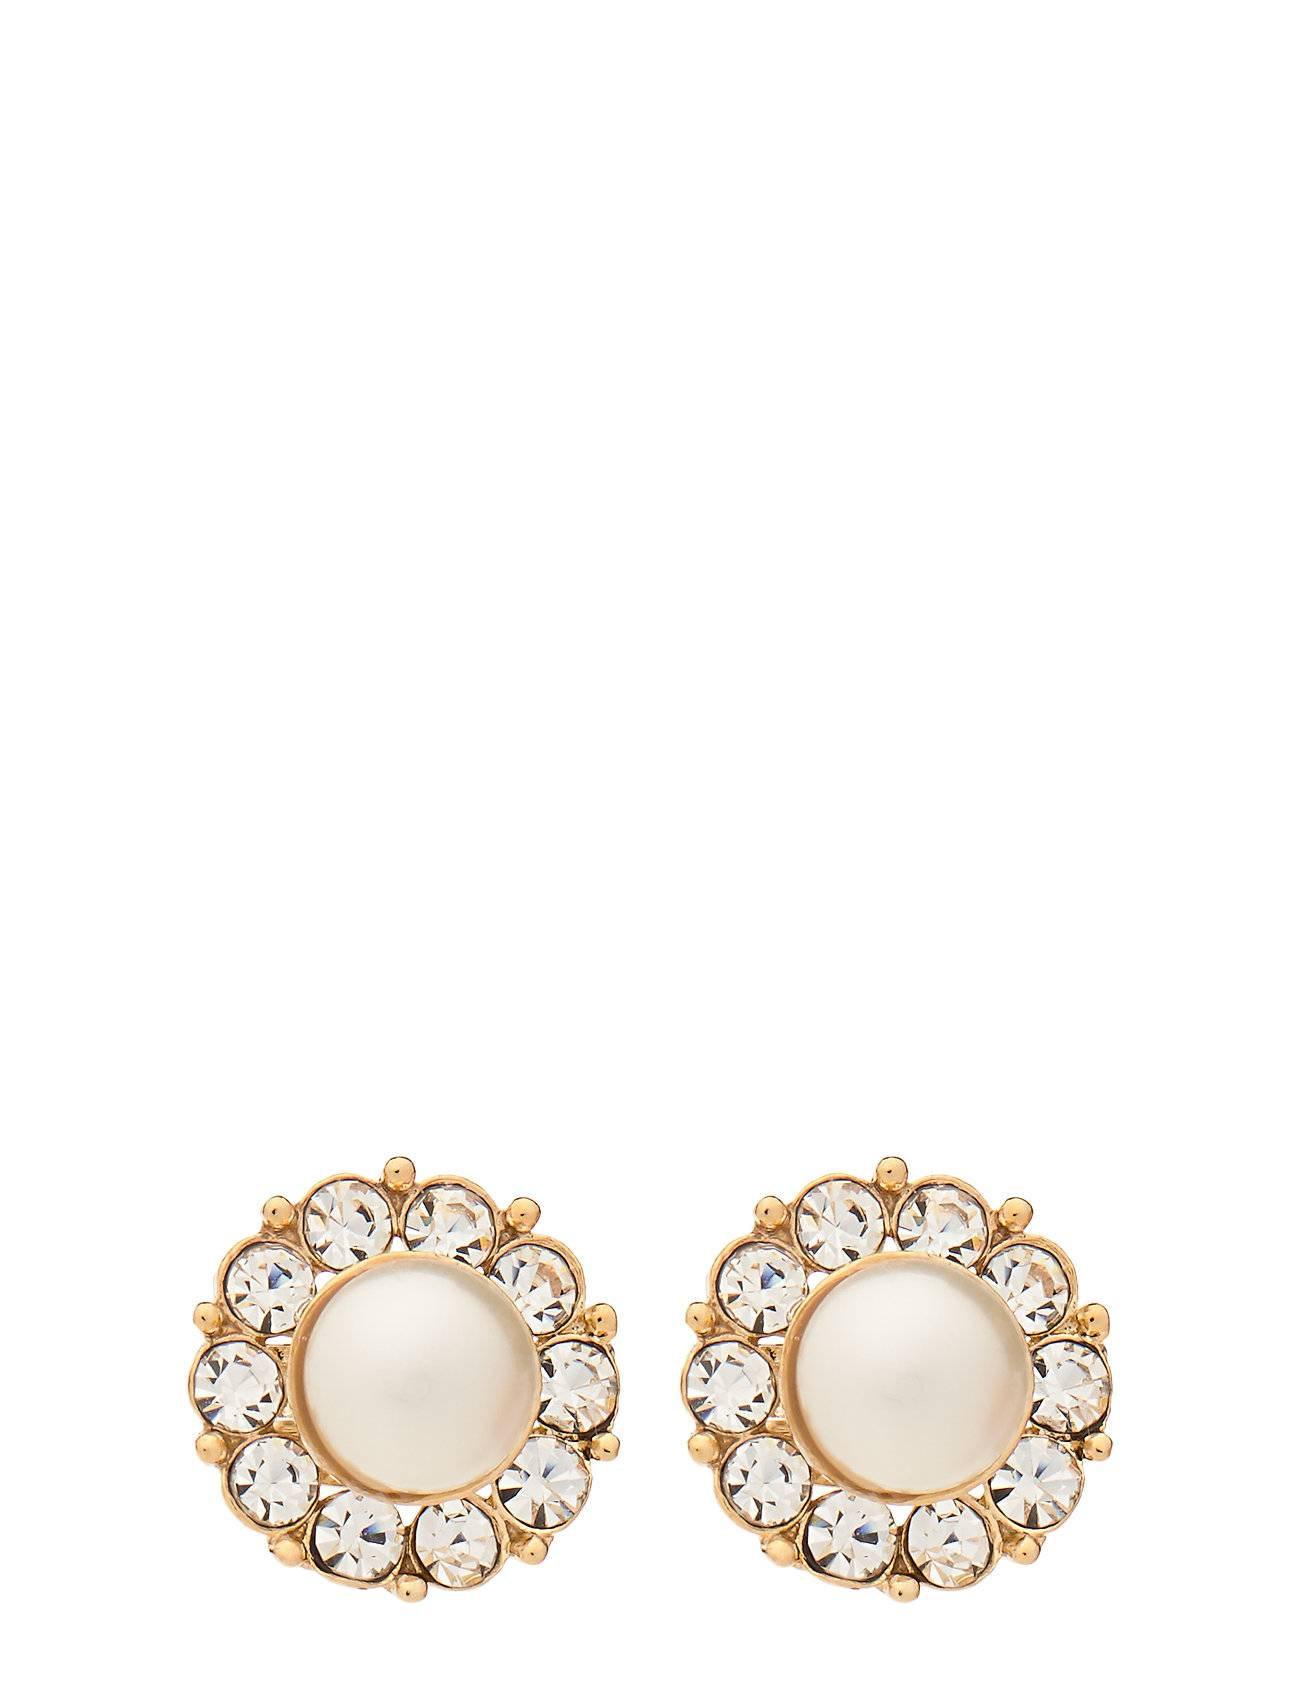 LILY AND ROSE Miss Sofia Pearl Earrings - Ivory Accessories Jewellery Earrings Studs Kulta LILY AND ROSE